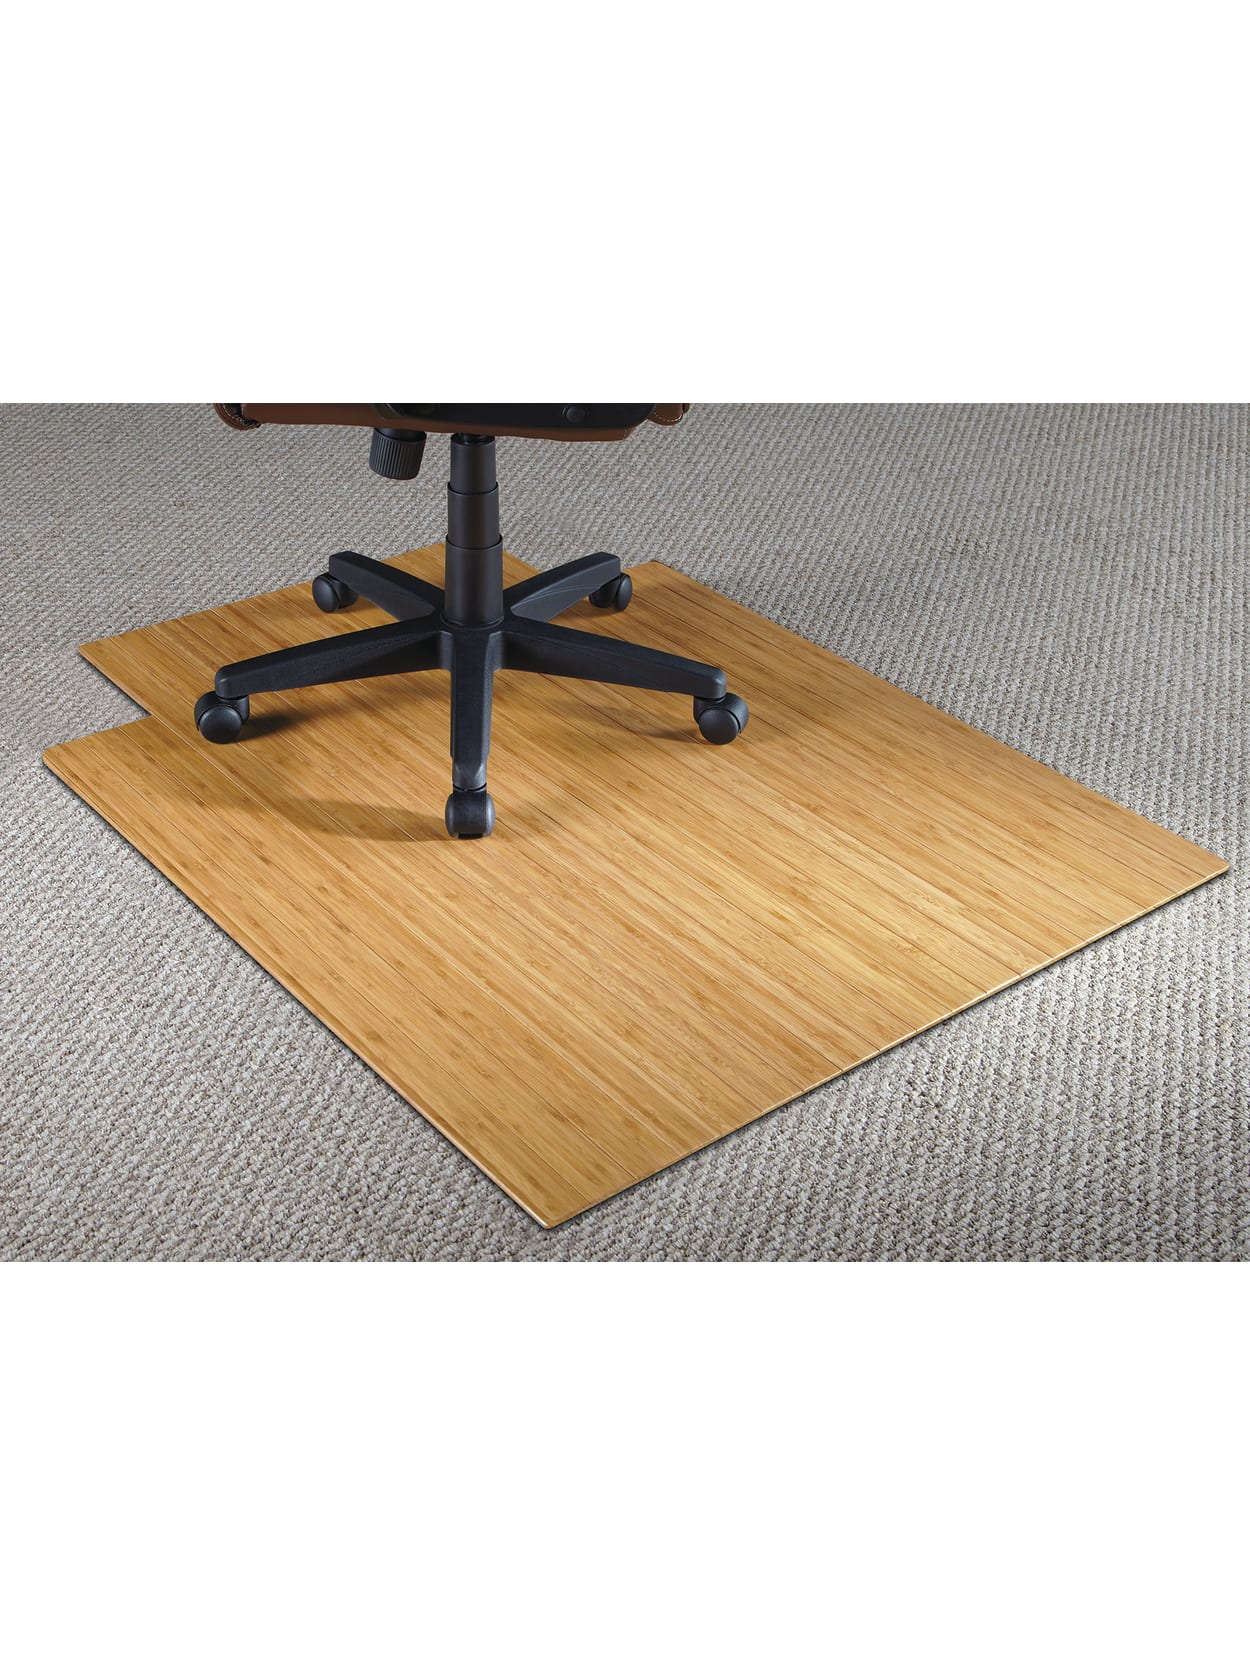 Office Chair Mat for Hardwood Floor 36 x 48 Chair Mat Protector with Lip for Hard Floors Thick Clear Computer Desk Mats Covering Protection for Office Home Chairmats